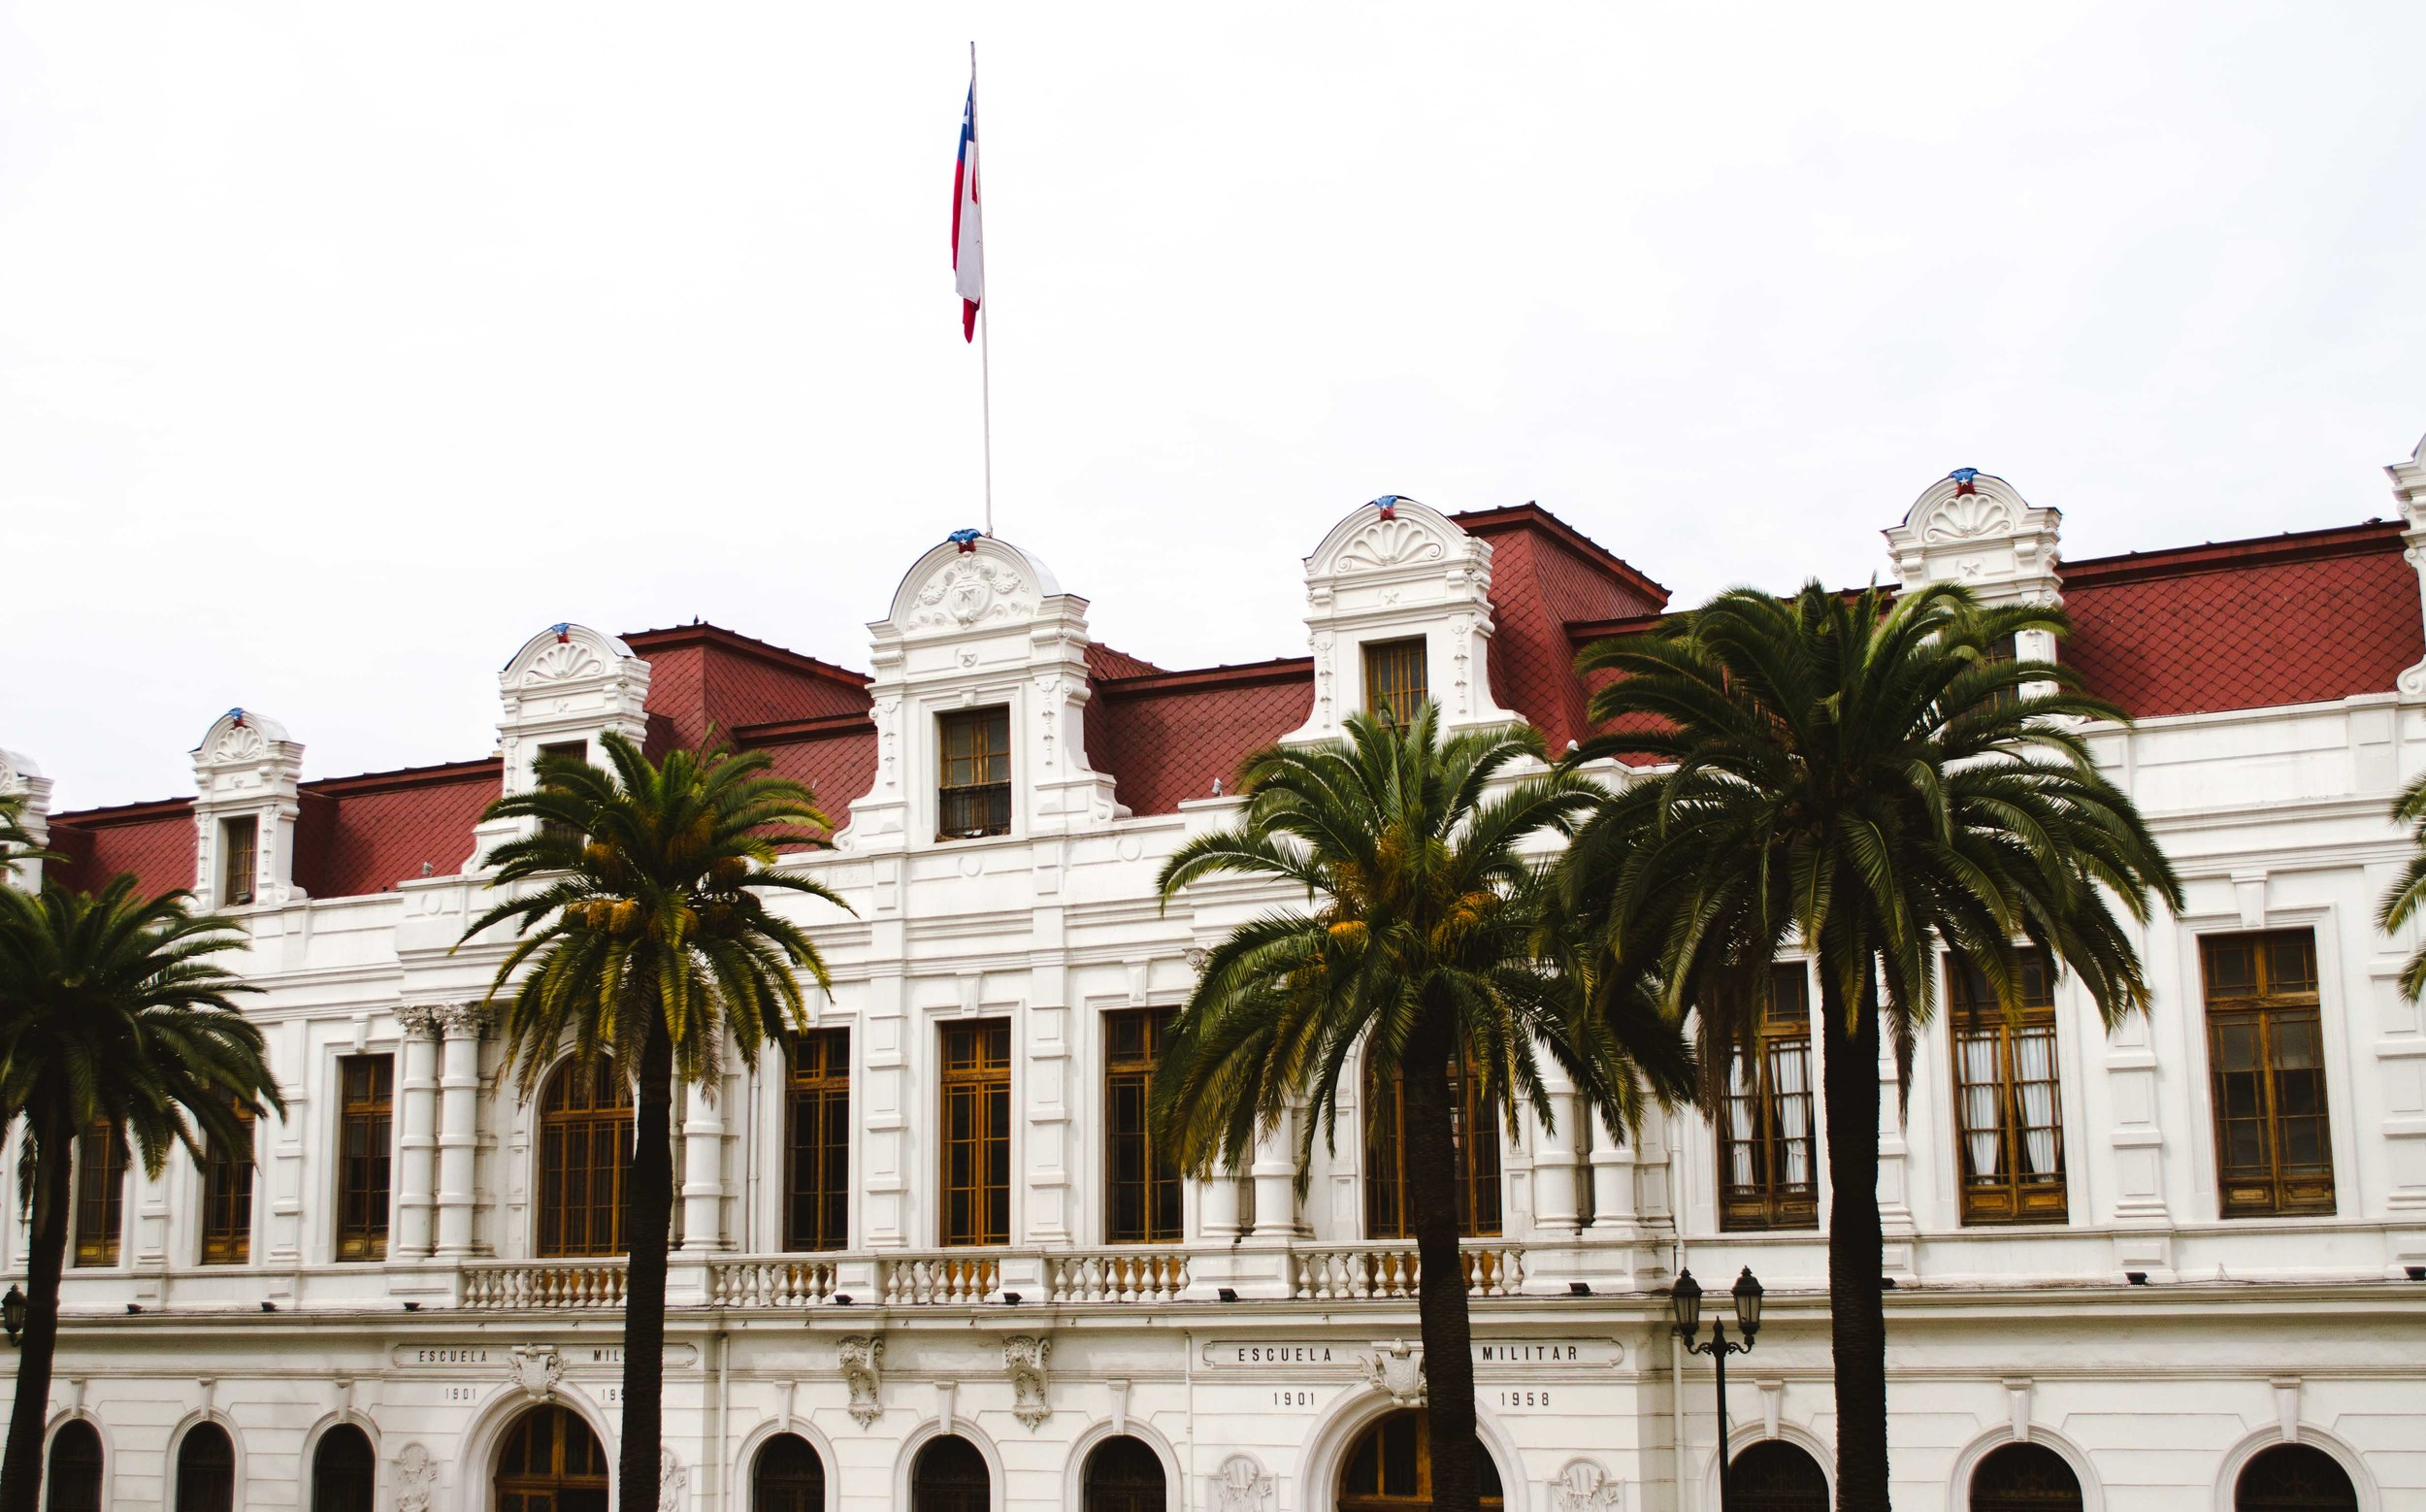 School and military museum in Santiago